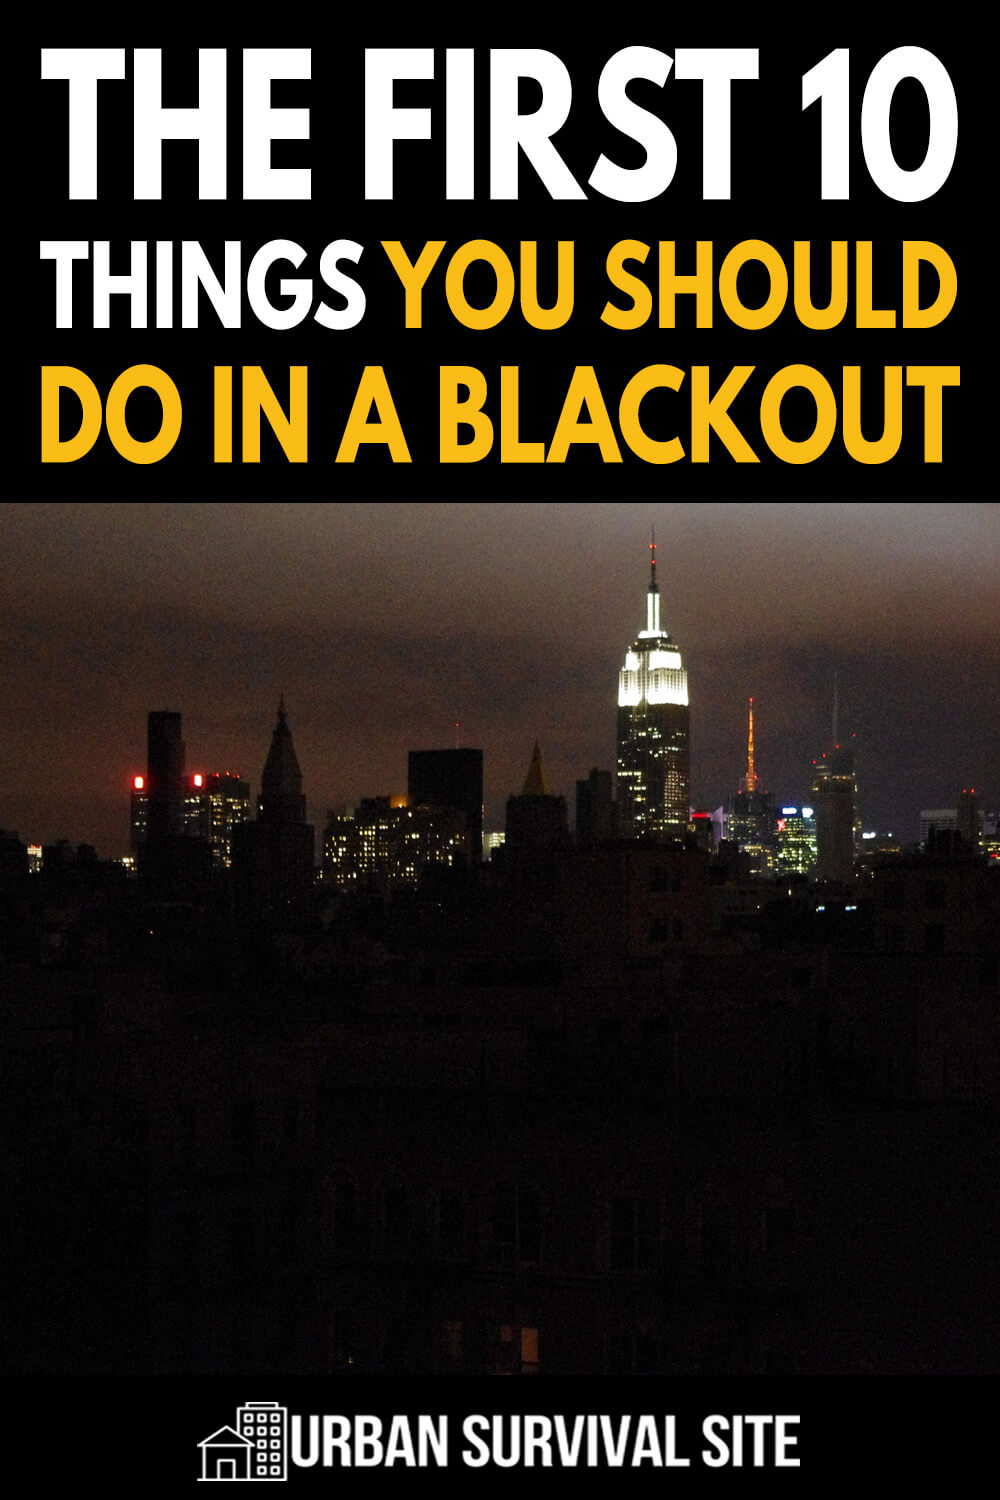 The First 10 Things You Should Do in A Blackout